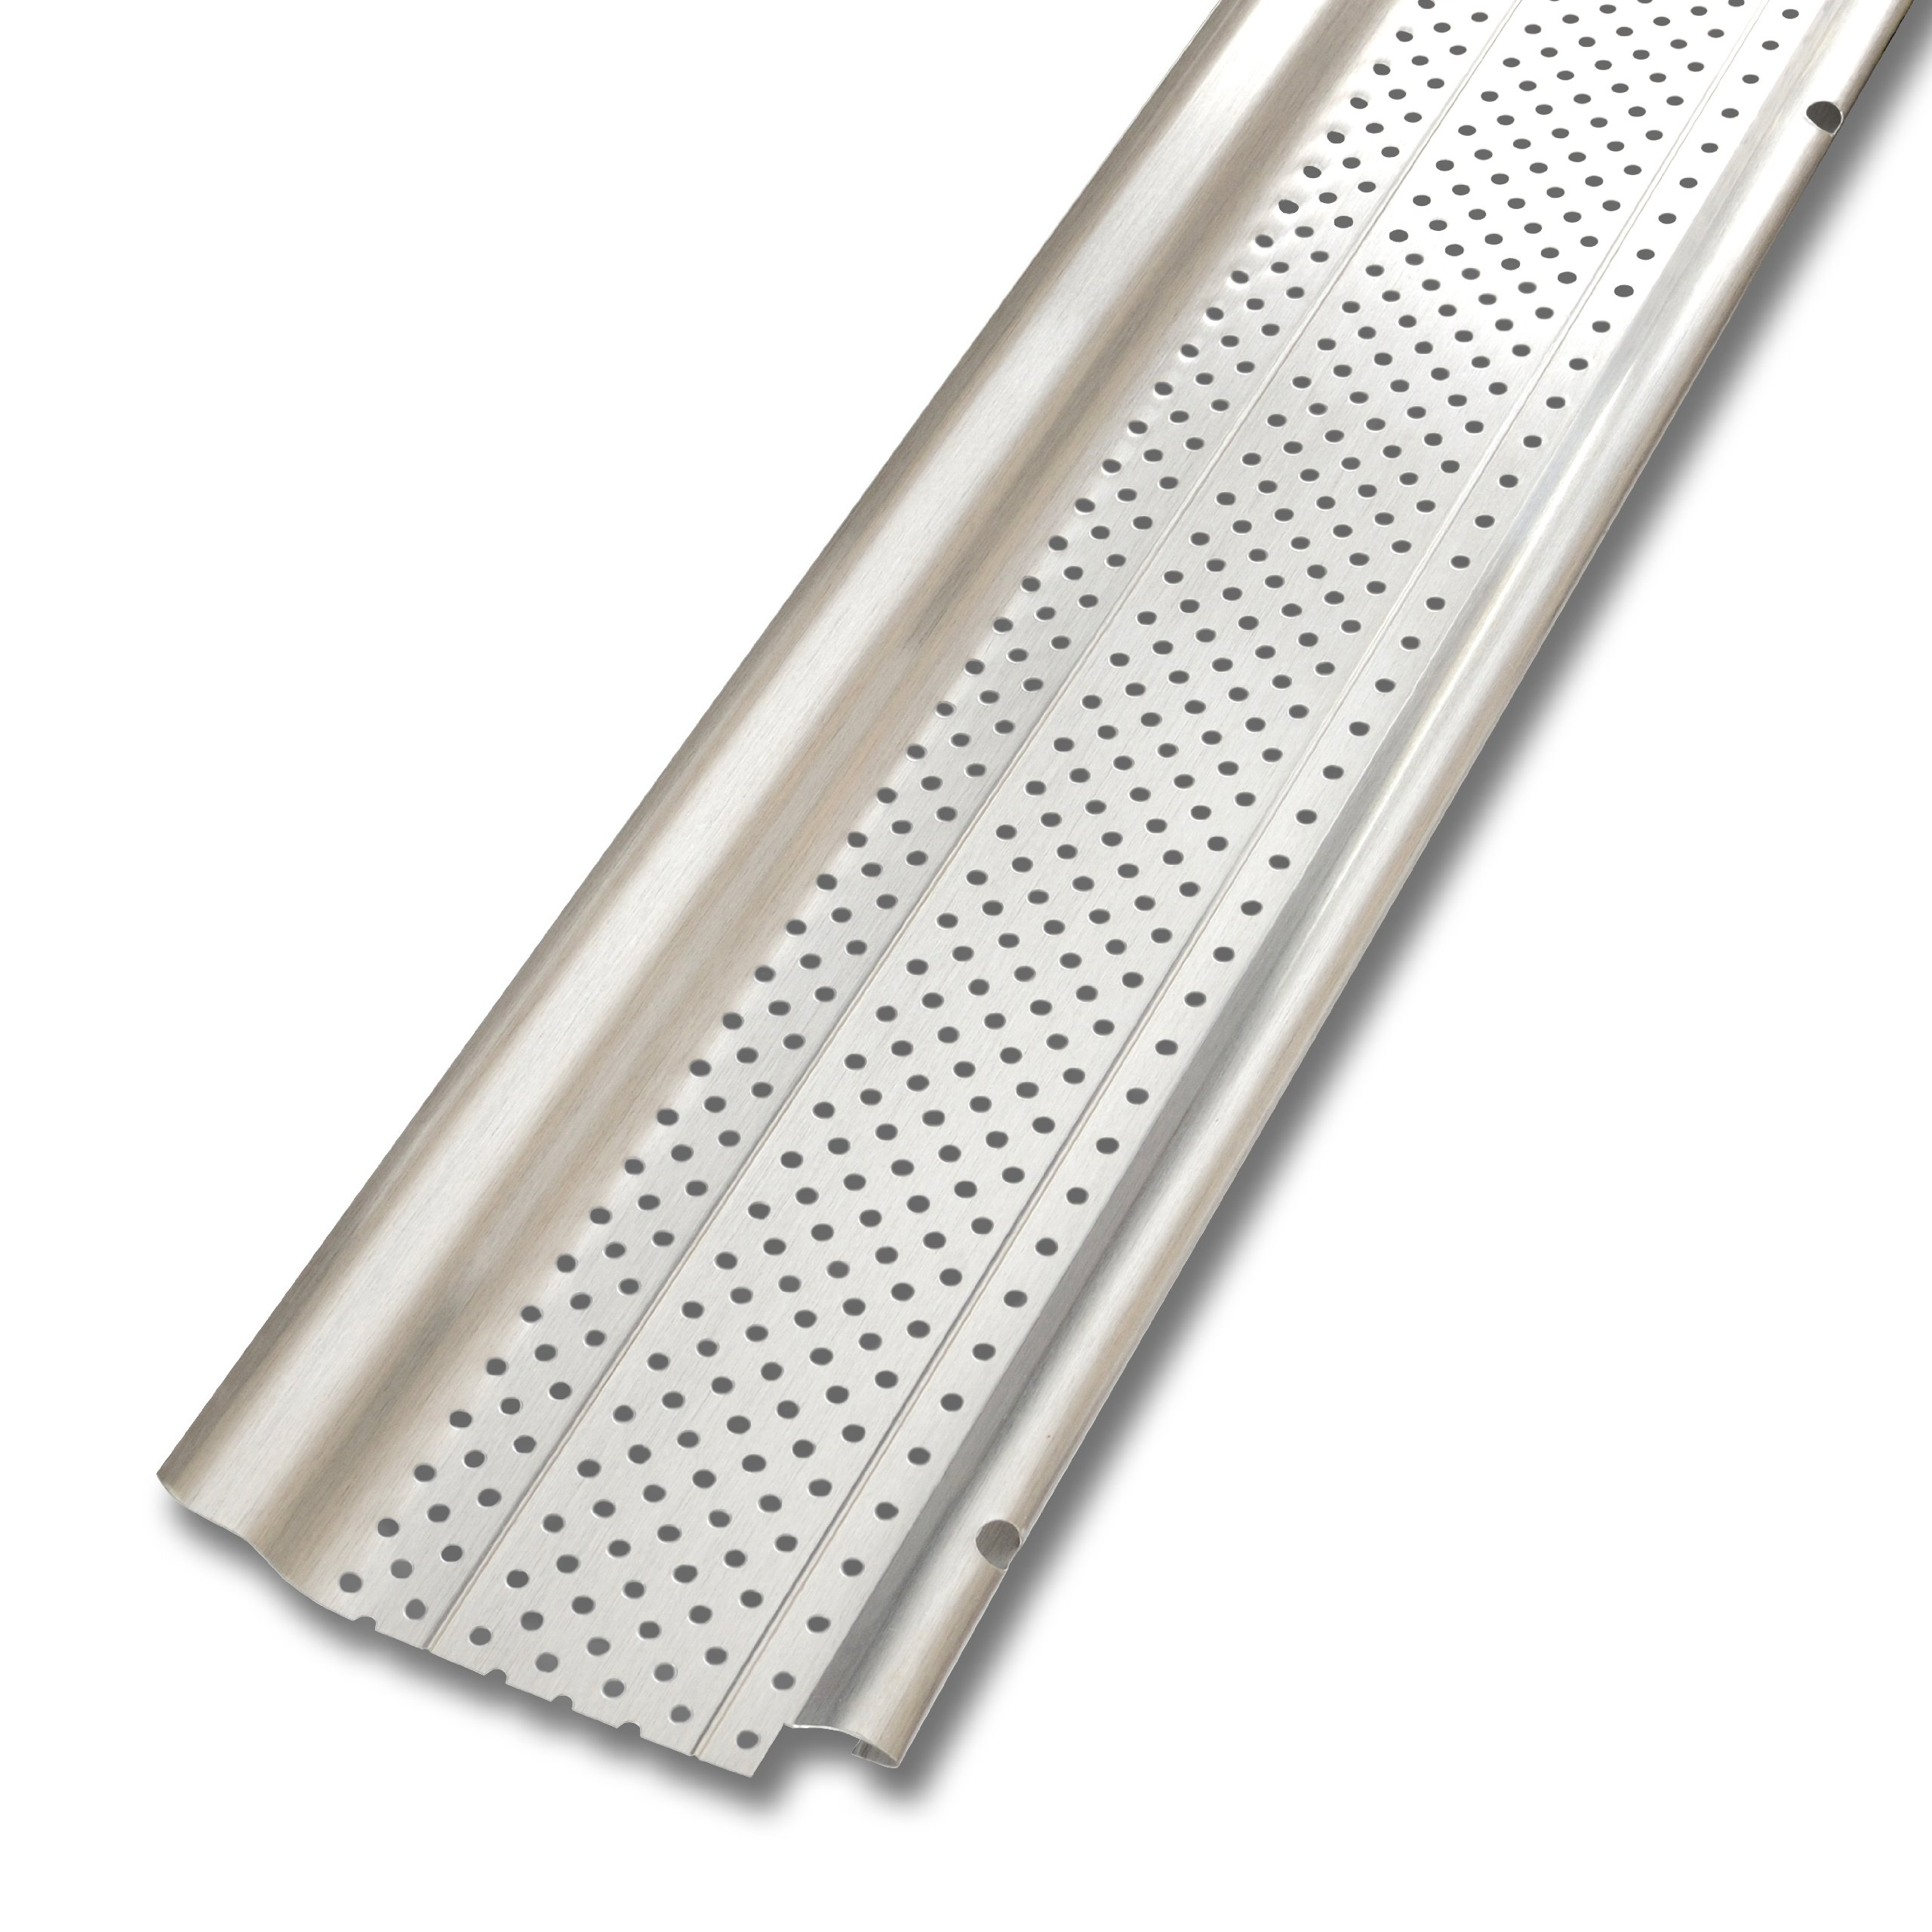 Smart Screen GPS401 Gutter Protection Covers, Aluminum, 5'' x 4' (Pack of 5) by Smart Screen